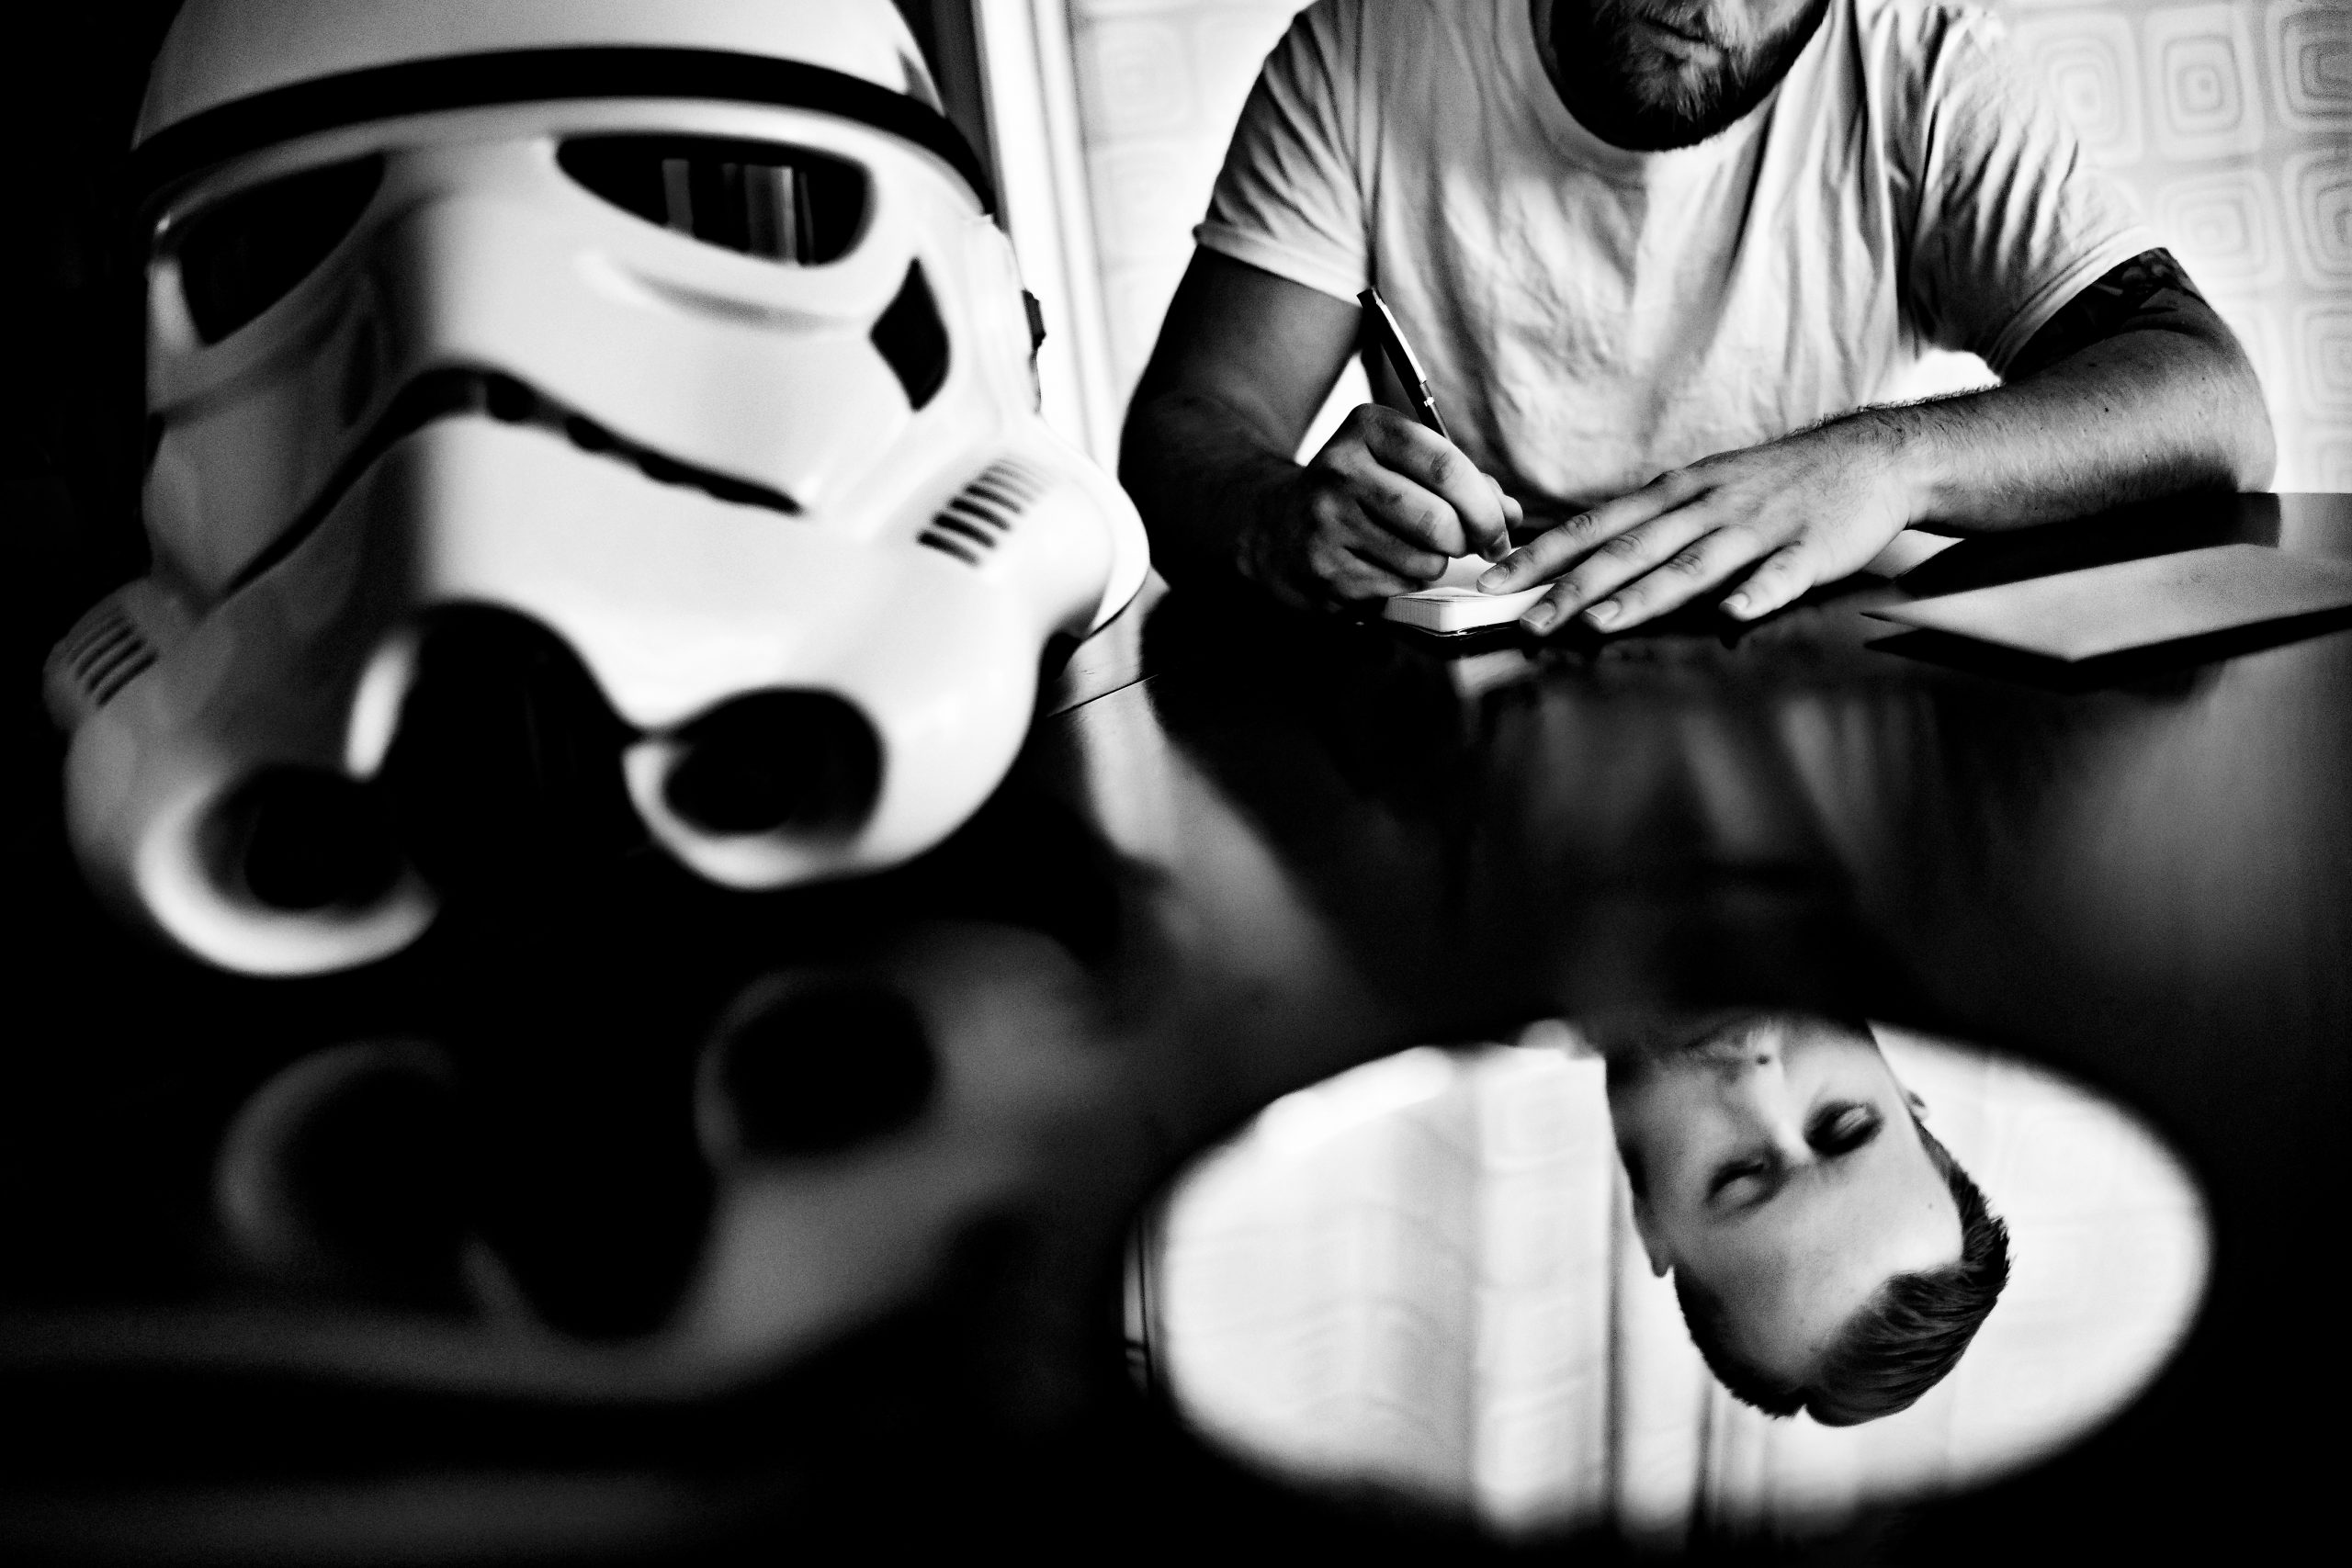 A Stormtrooper helmet sits on a desk as the groom reviews his wedding vows.